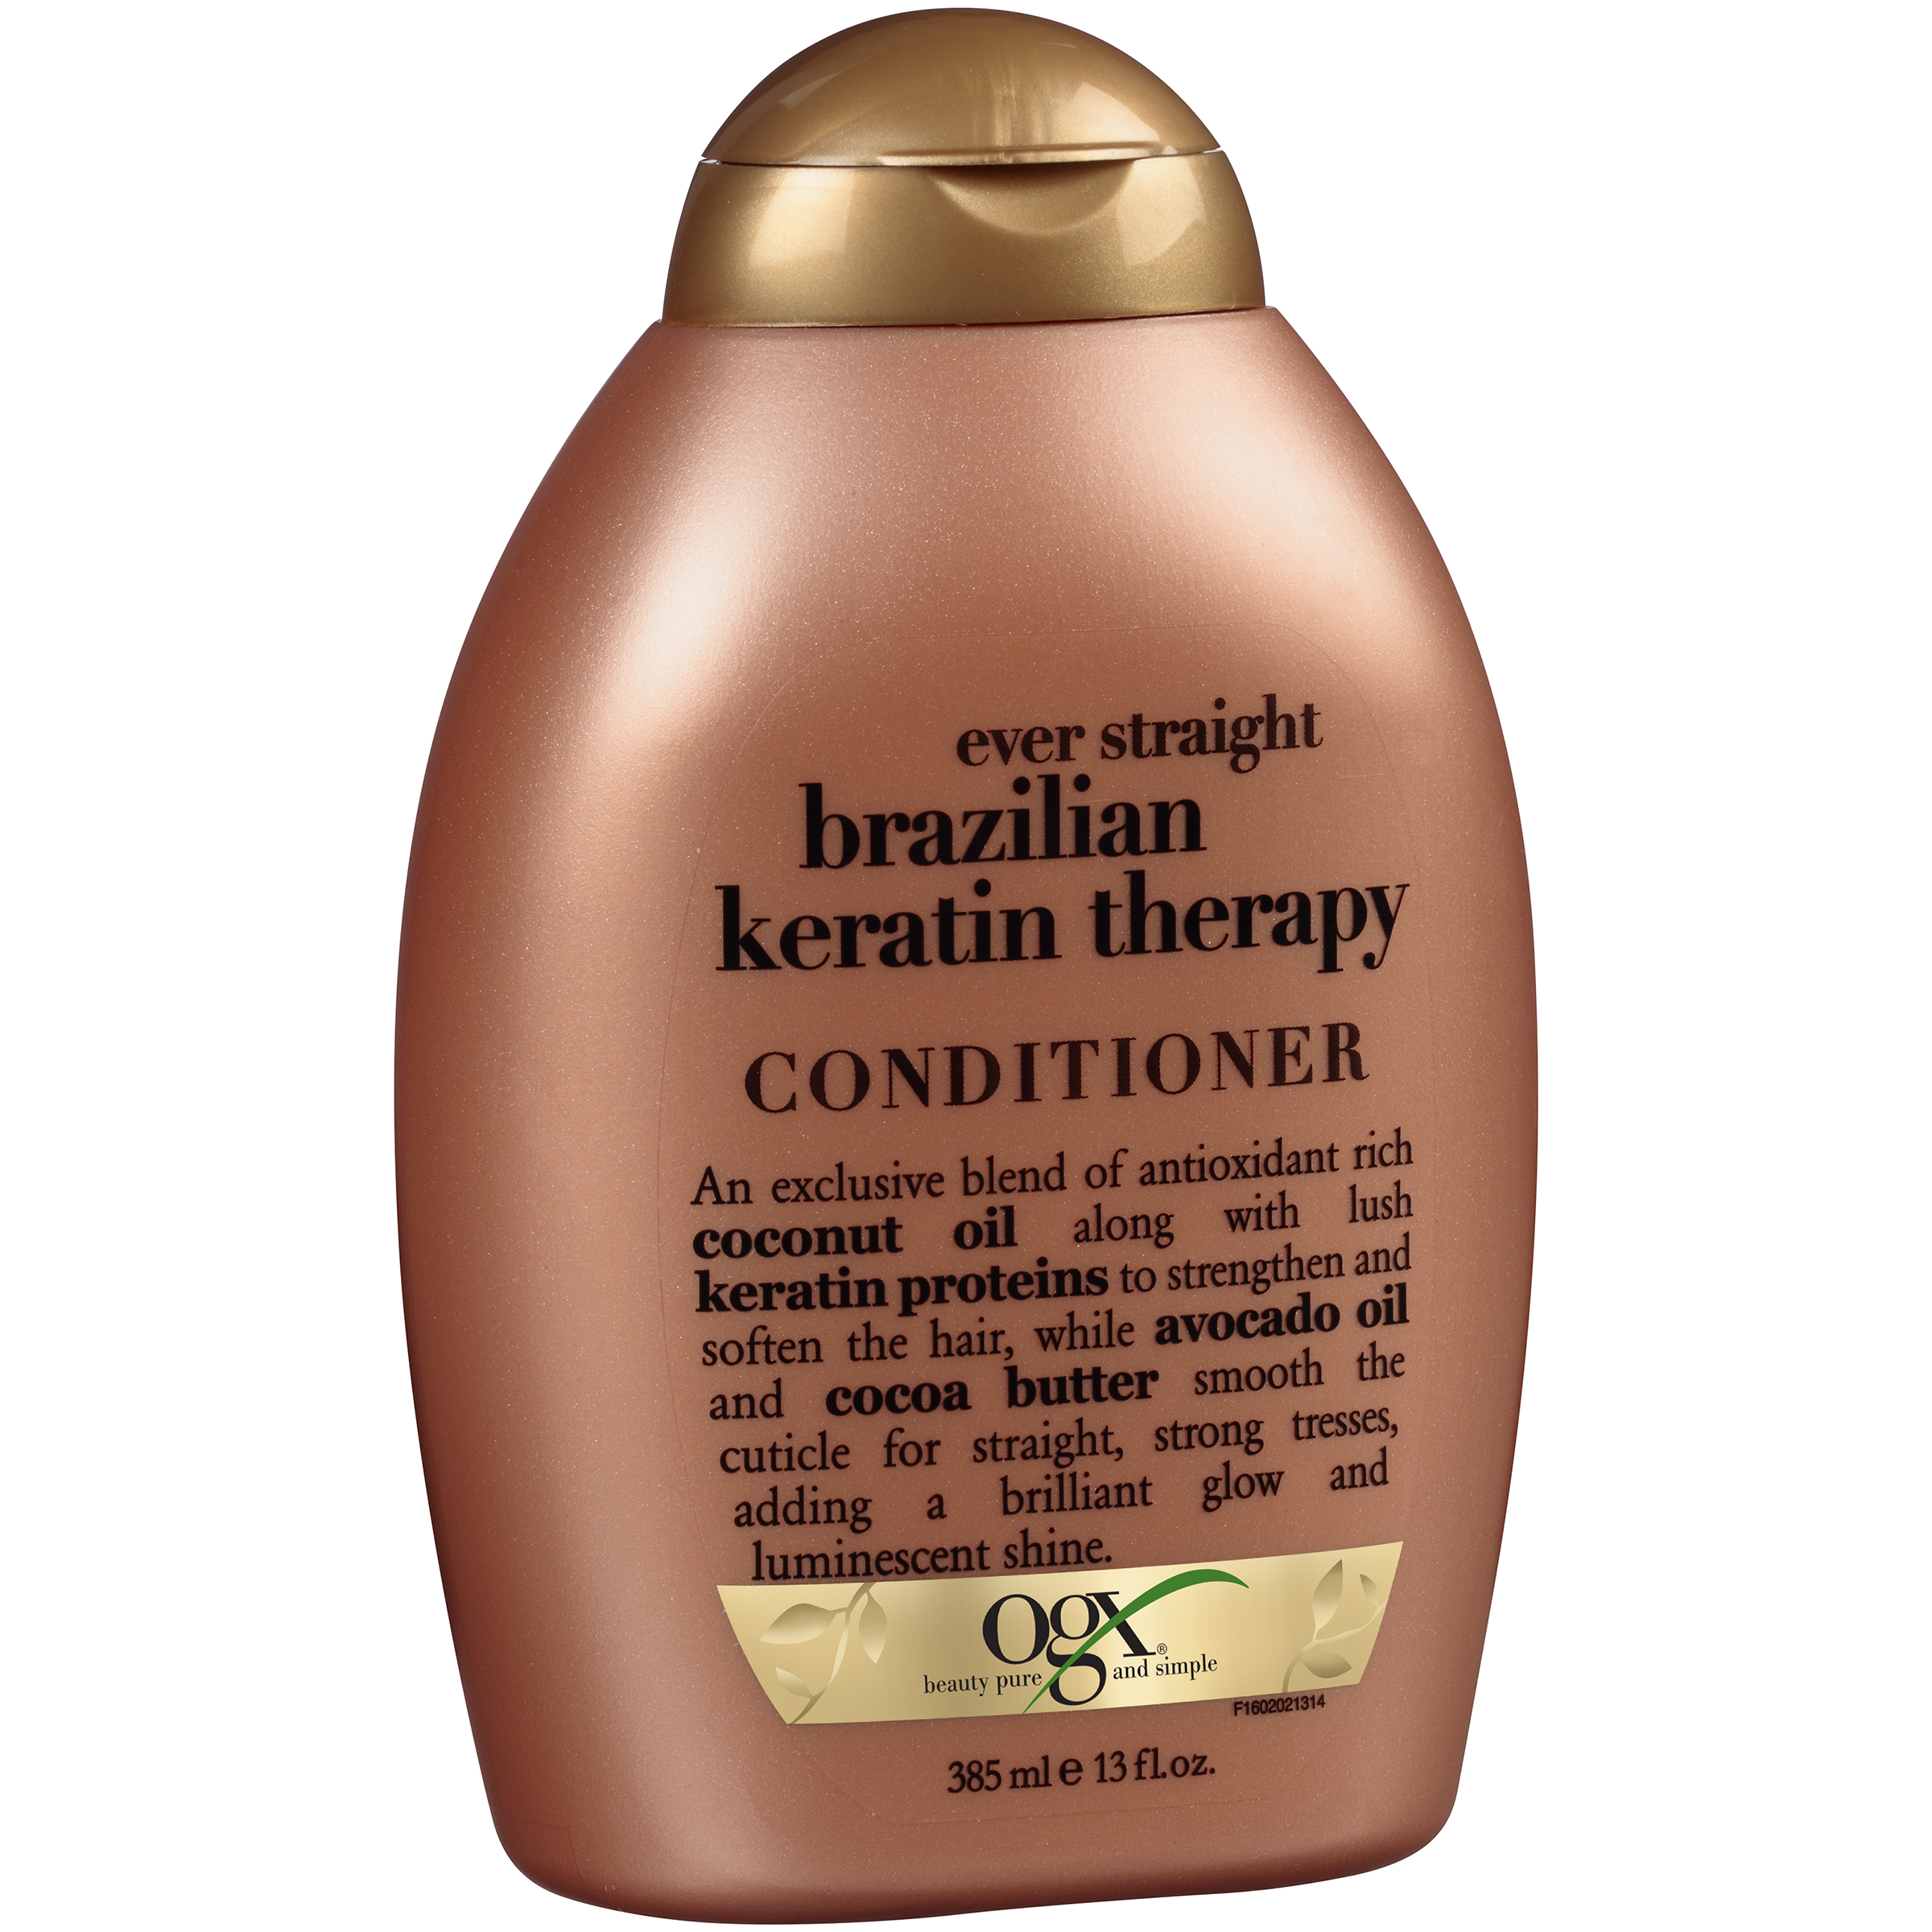 Ogx Ever Straightening + Brazilian Keratin Therapy Conditioner 13 fl.oz